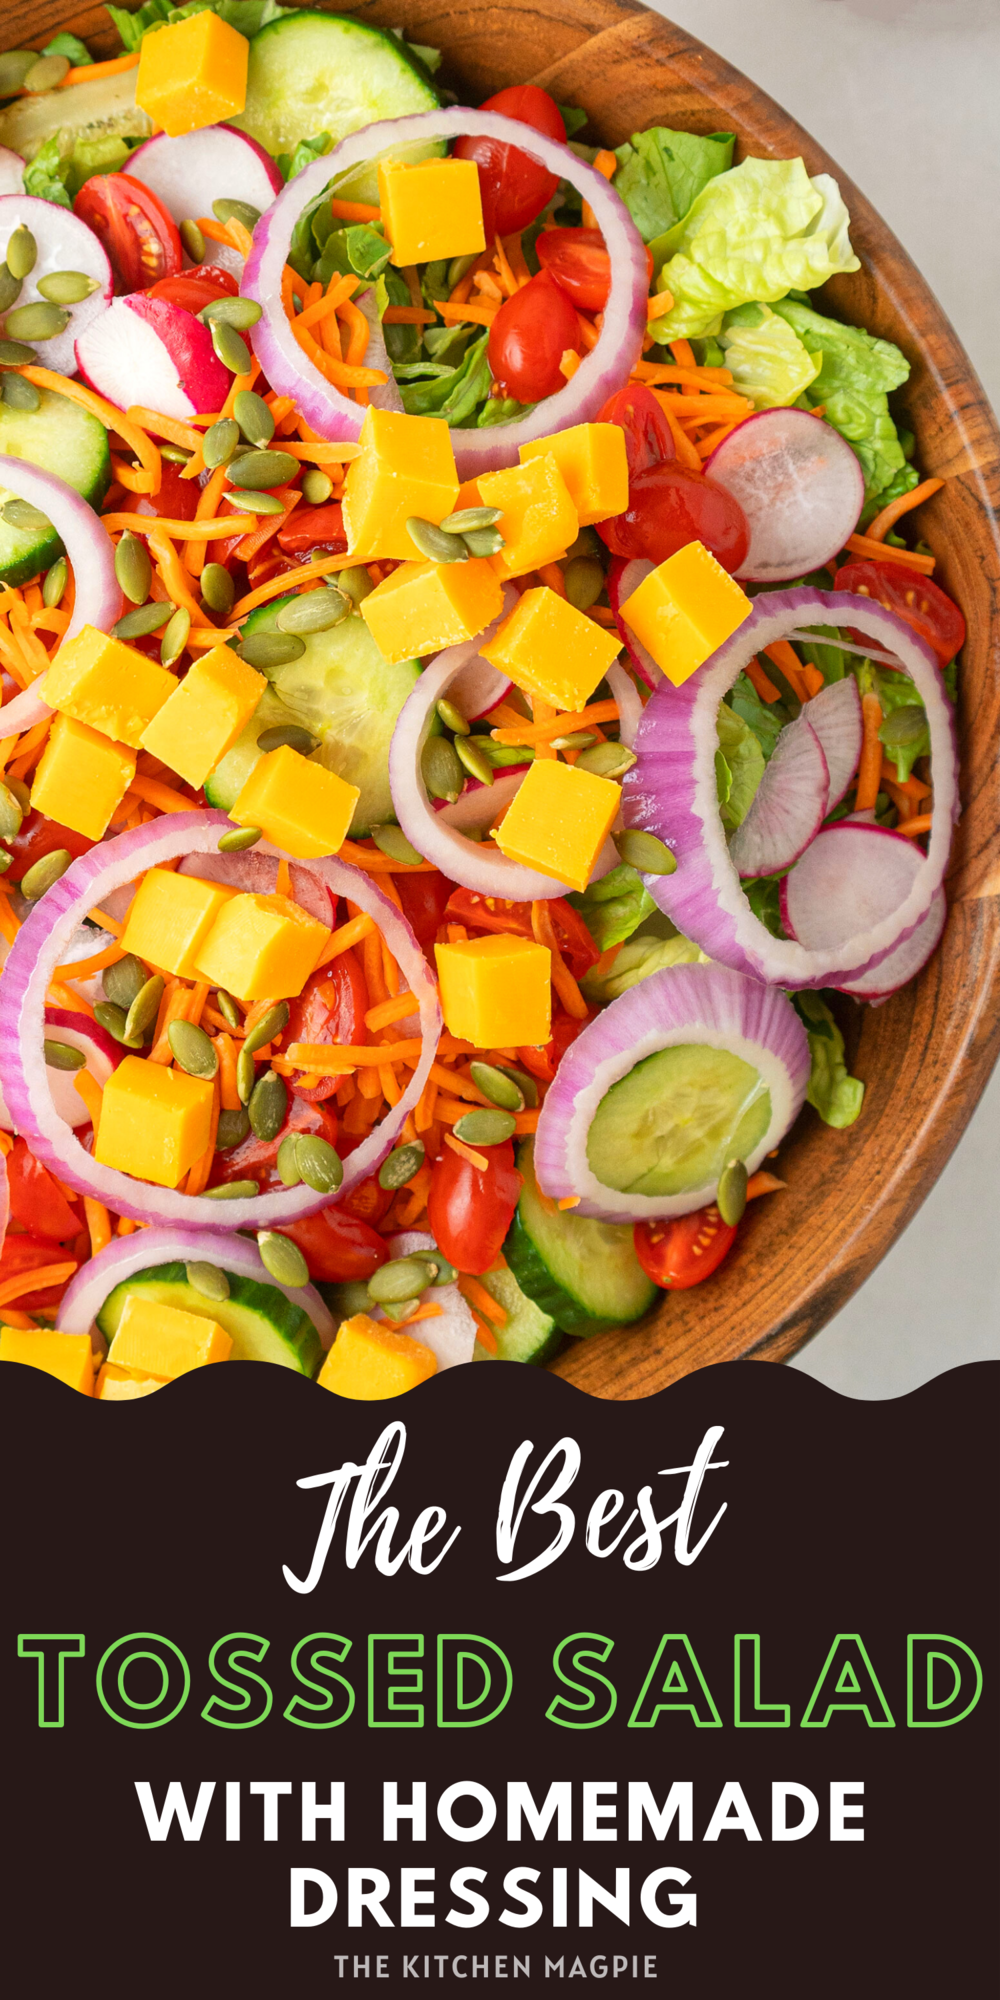 This classic tossed salad is loaded with healthy vegetables and takes mere minutes to make. Always a crowd pleaser with the cheddar cheese!